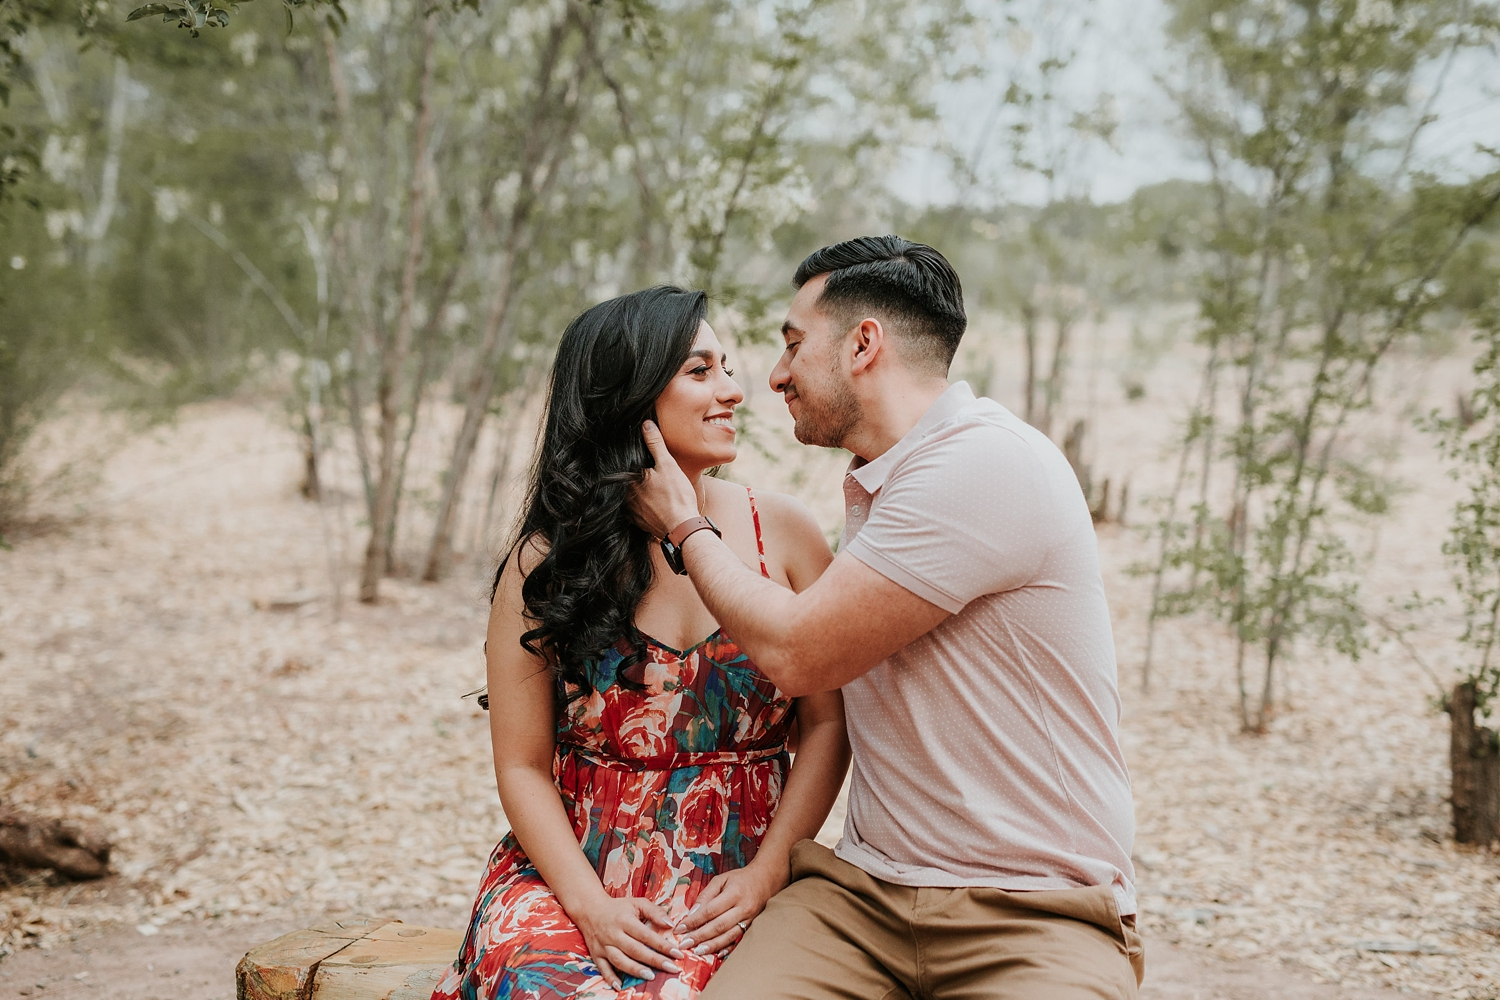 Alicia+lucia+photography+-+albuquerque+wedding+photographer+-+santa+fe+wedding+photography+-+new+mexico+wedding+photographer+-+new+mexico+engagement+-+new+mexico+desert+engagement+-+spring+bosque+engagement_0010.jpg